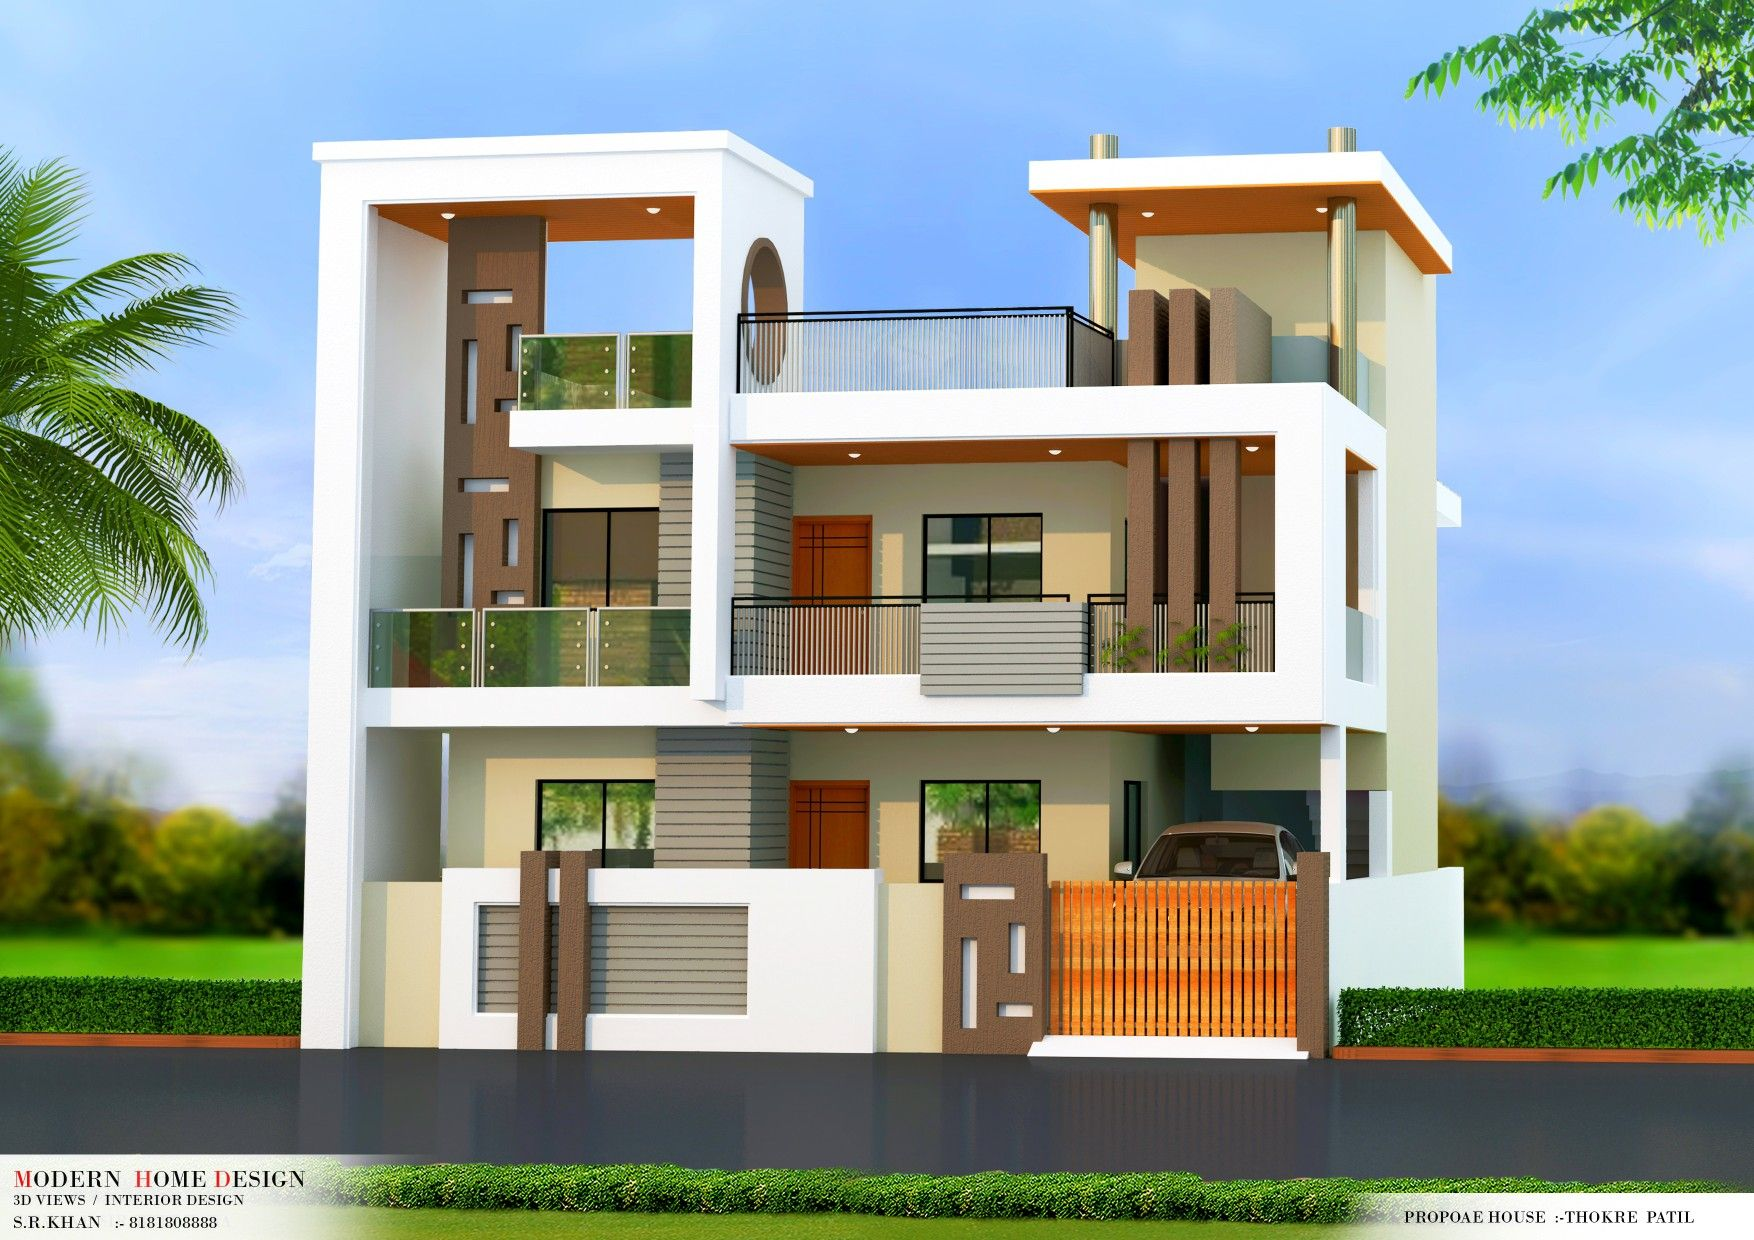 Pin By Modern Home Design On House Elevation Indian House Plans House Styles House Architecture Design